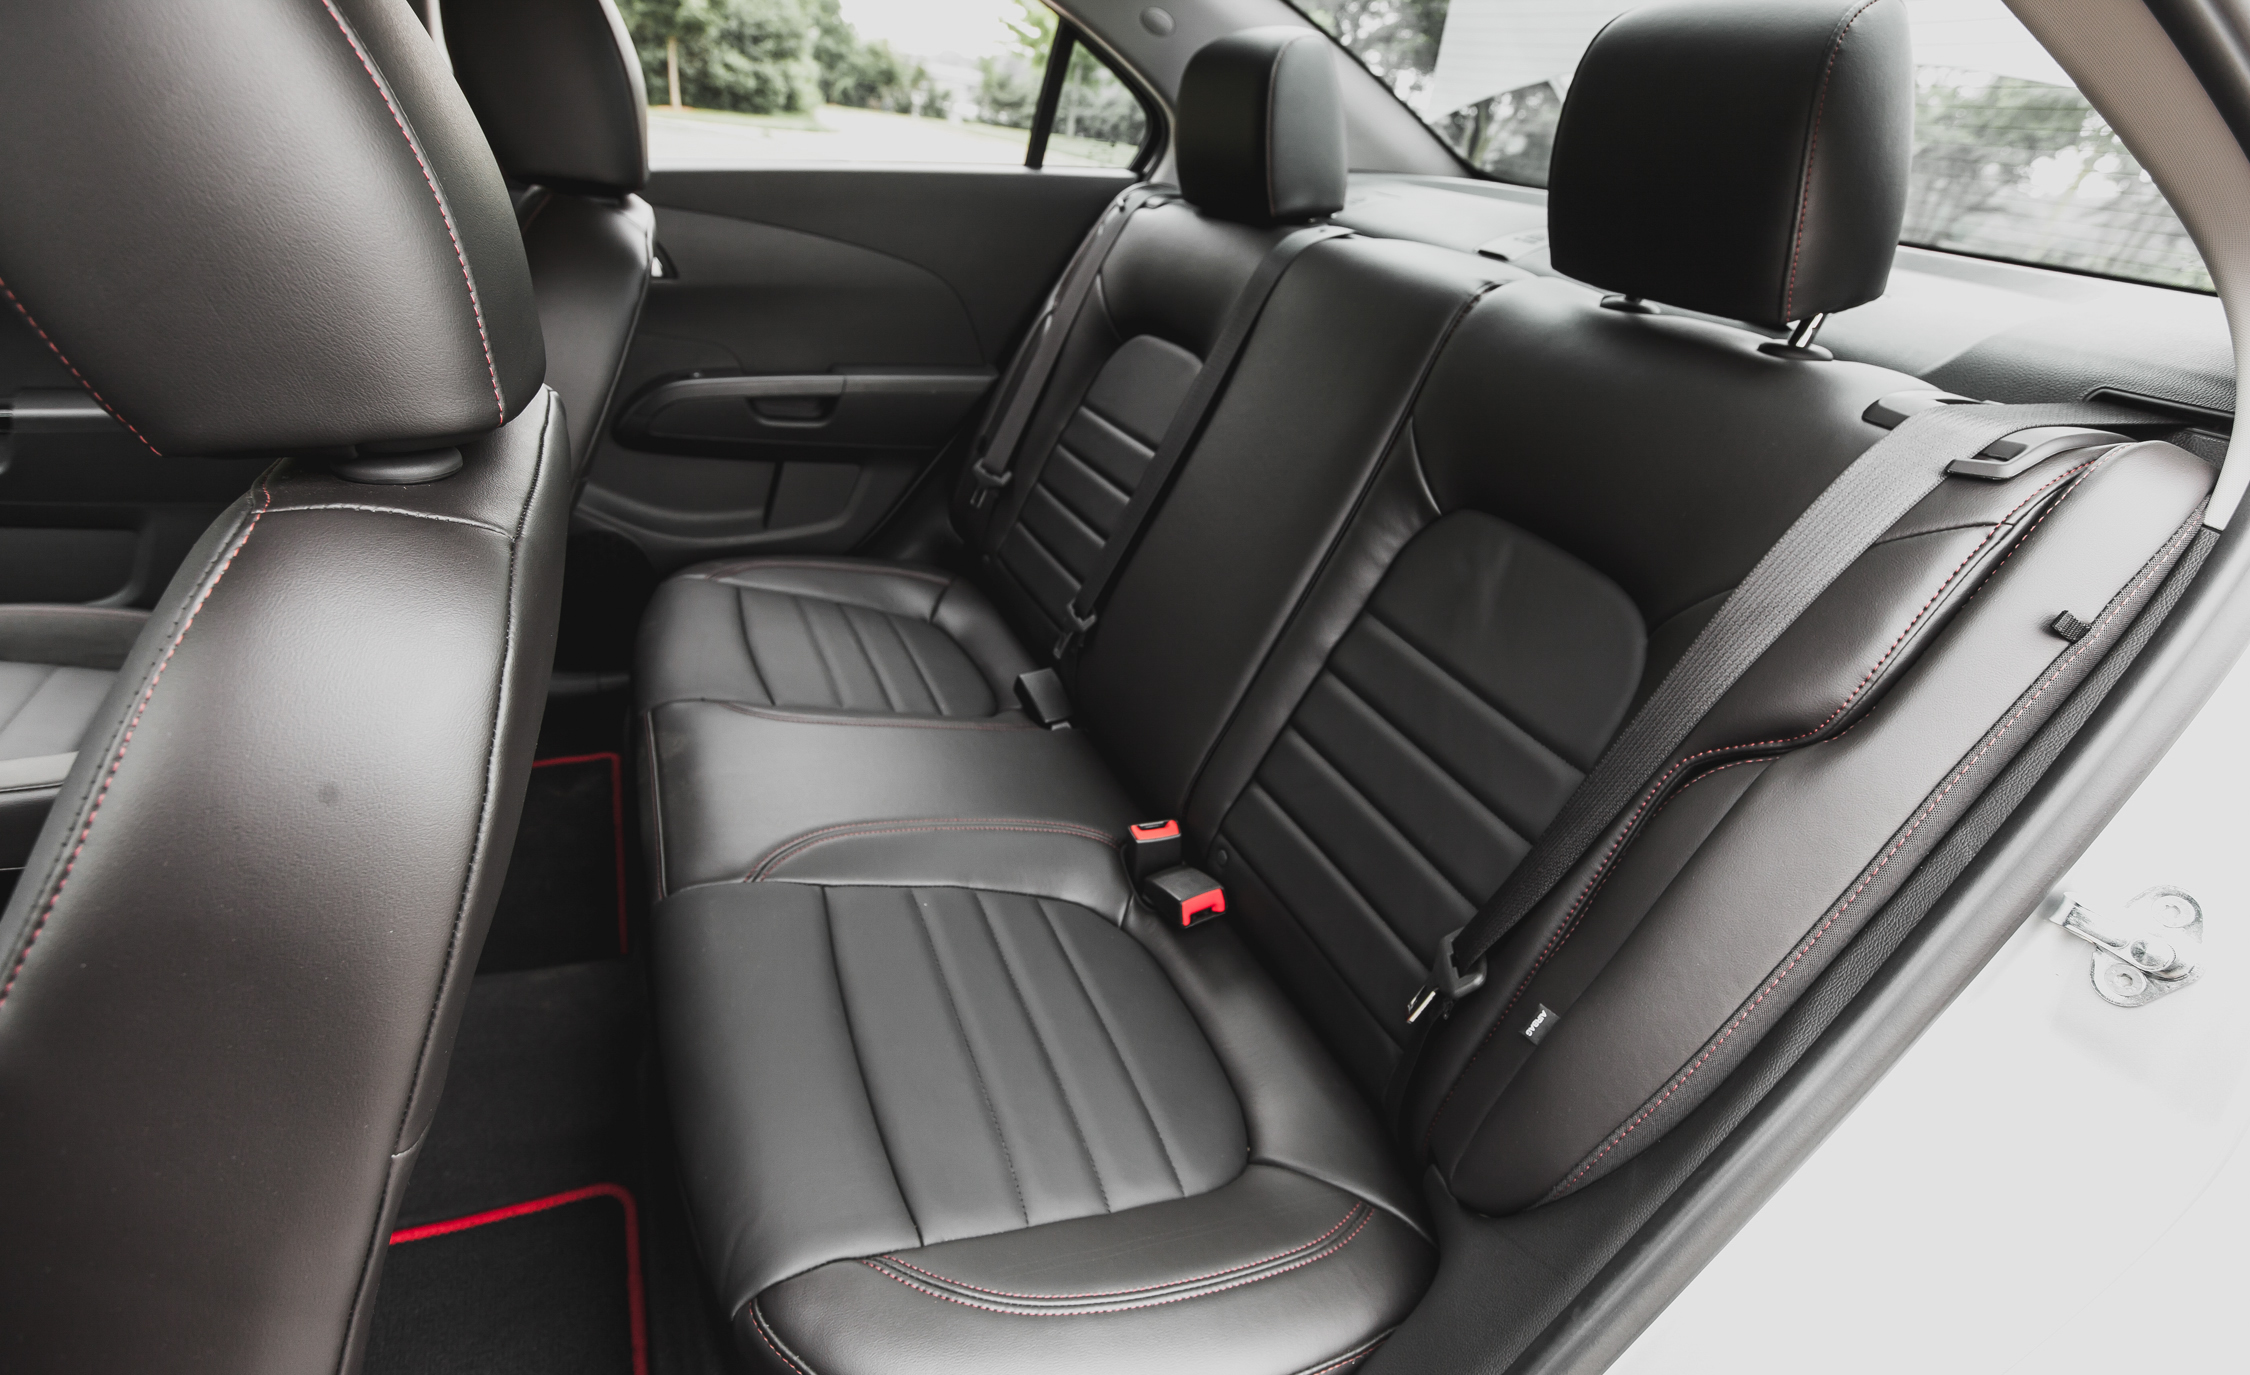 2014 Chevrolet Sonic RS Sedan Interior (Photo 22 of 27)